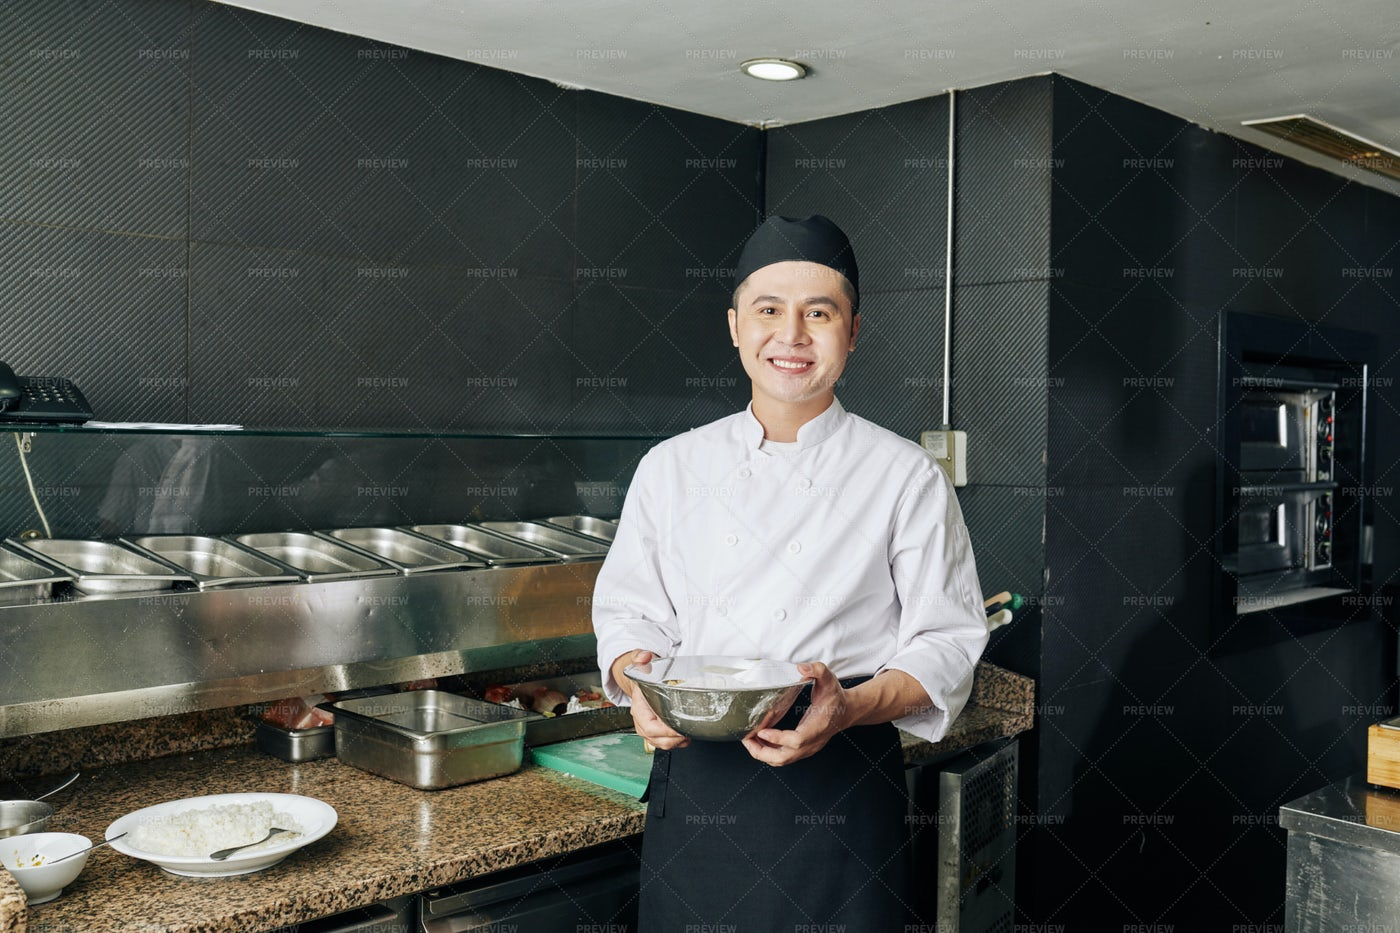 Asian Cook Working At The Restaurant: Stock Photos